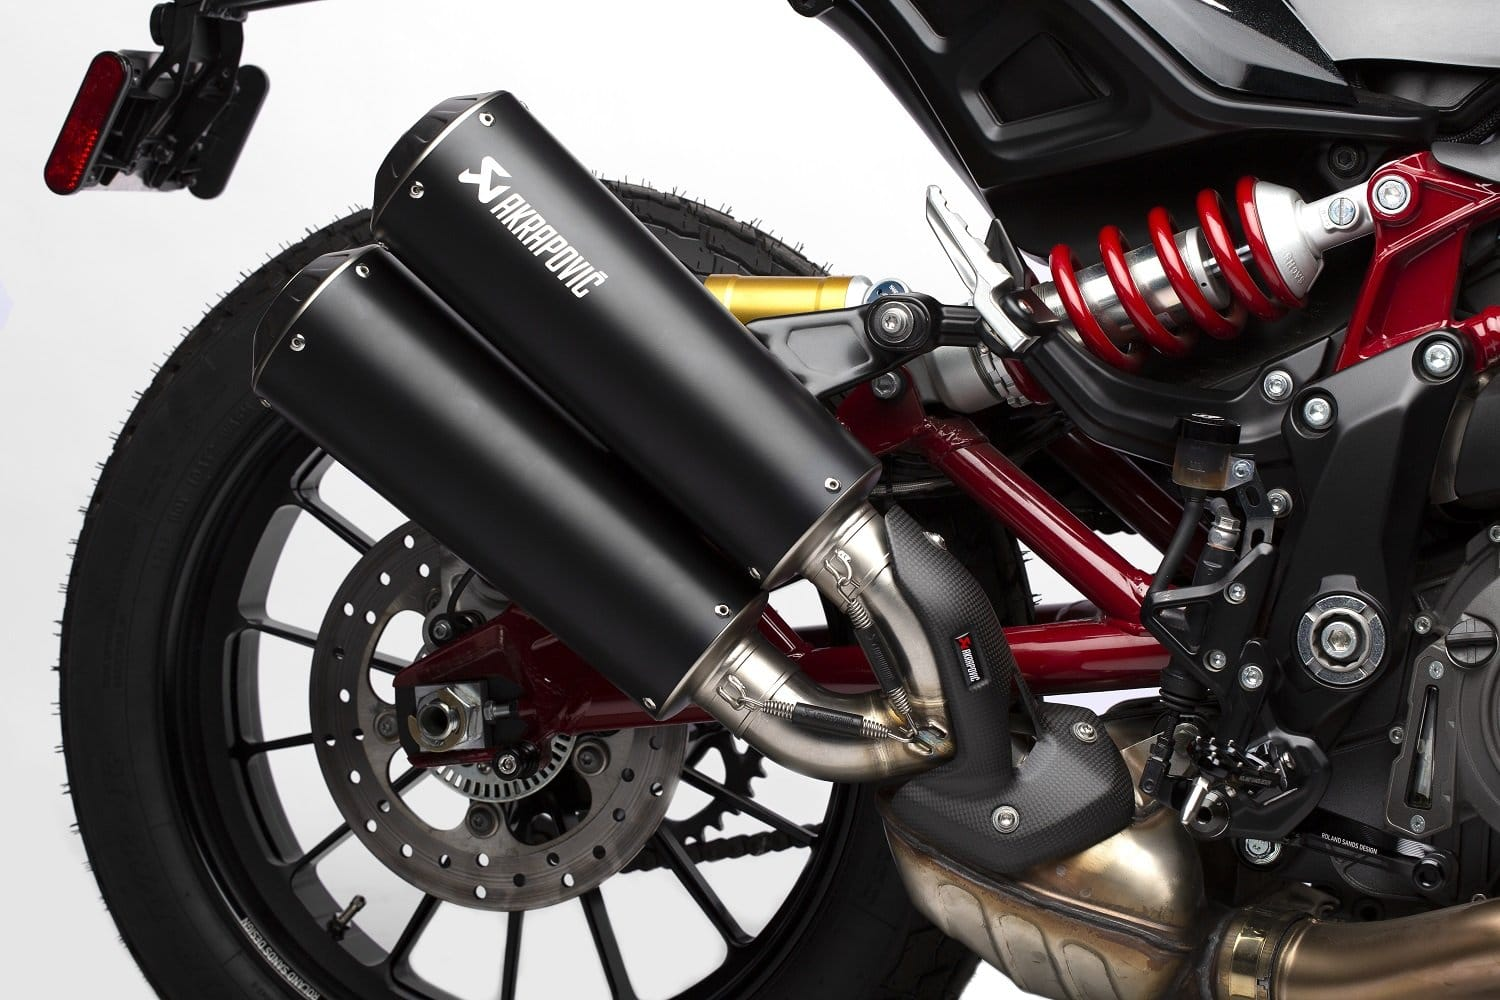 Indian Motorcycle has added carbon-fibre Akrapovič exhaust options for the FTR 1200